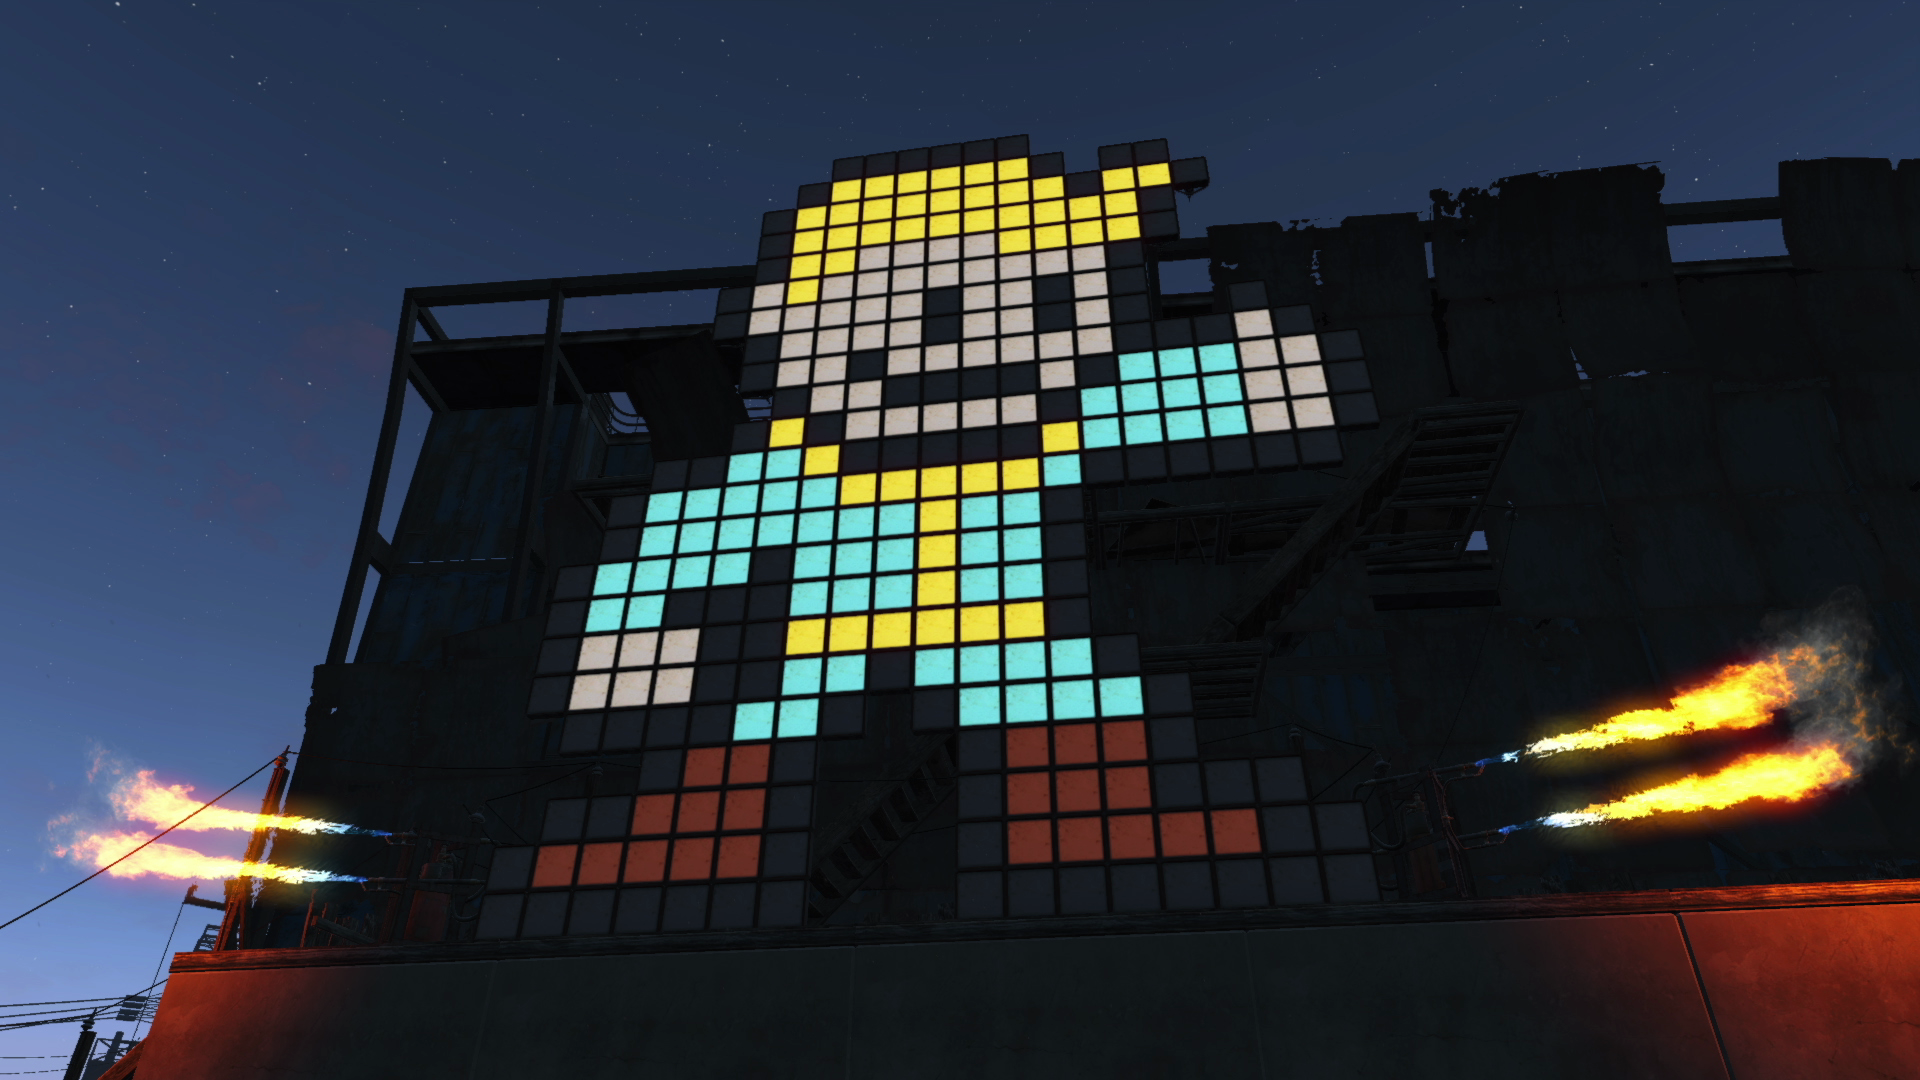 Pre-ordered Fallout 4? You May Need To Reinstall It On Xbox One